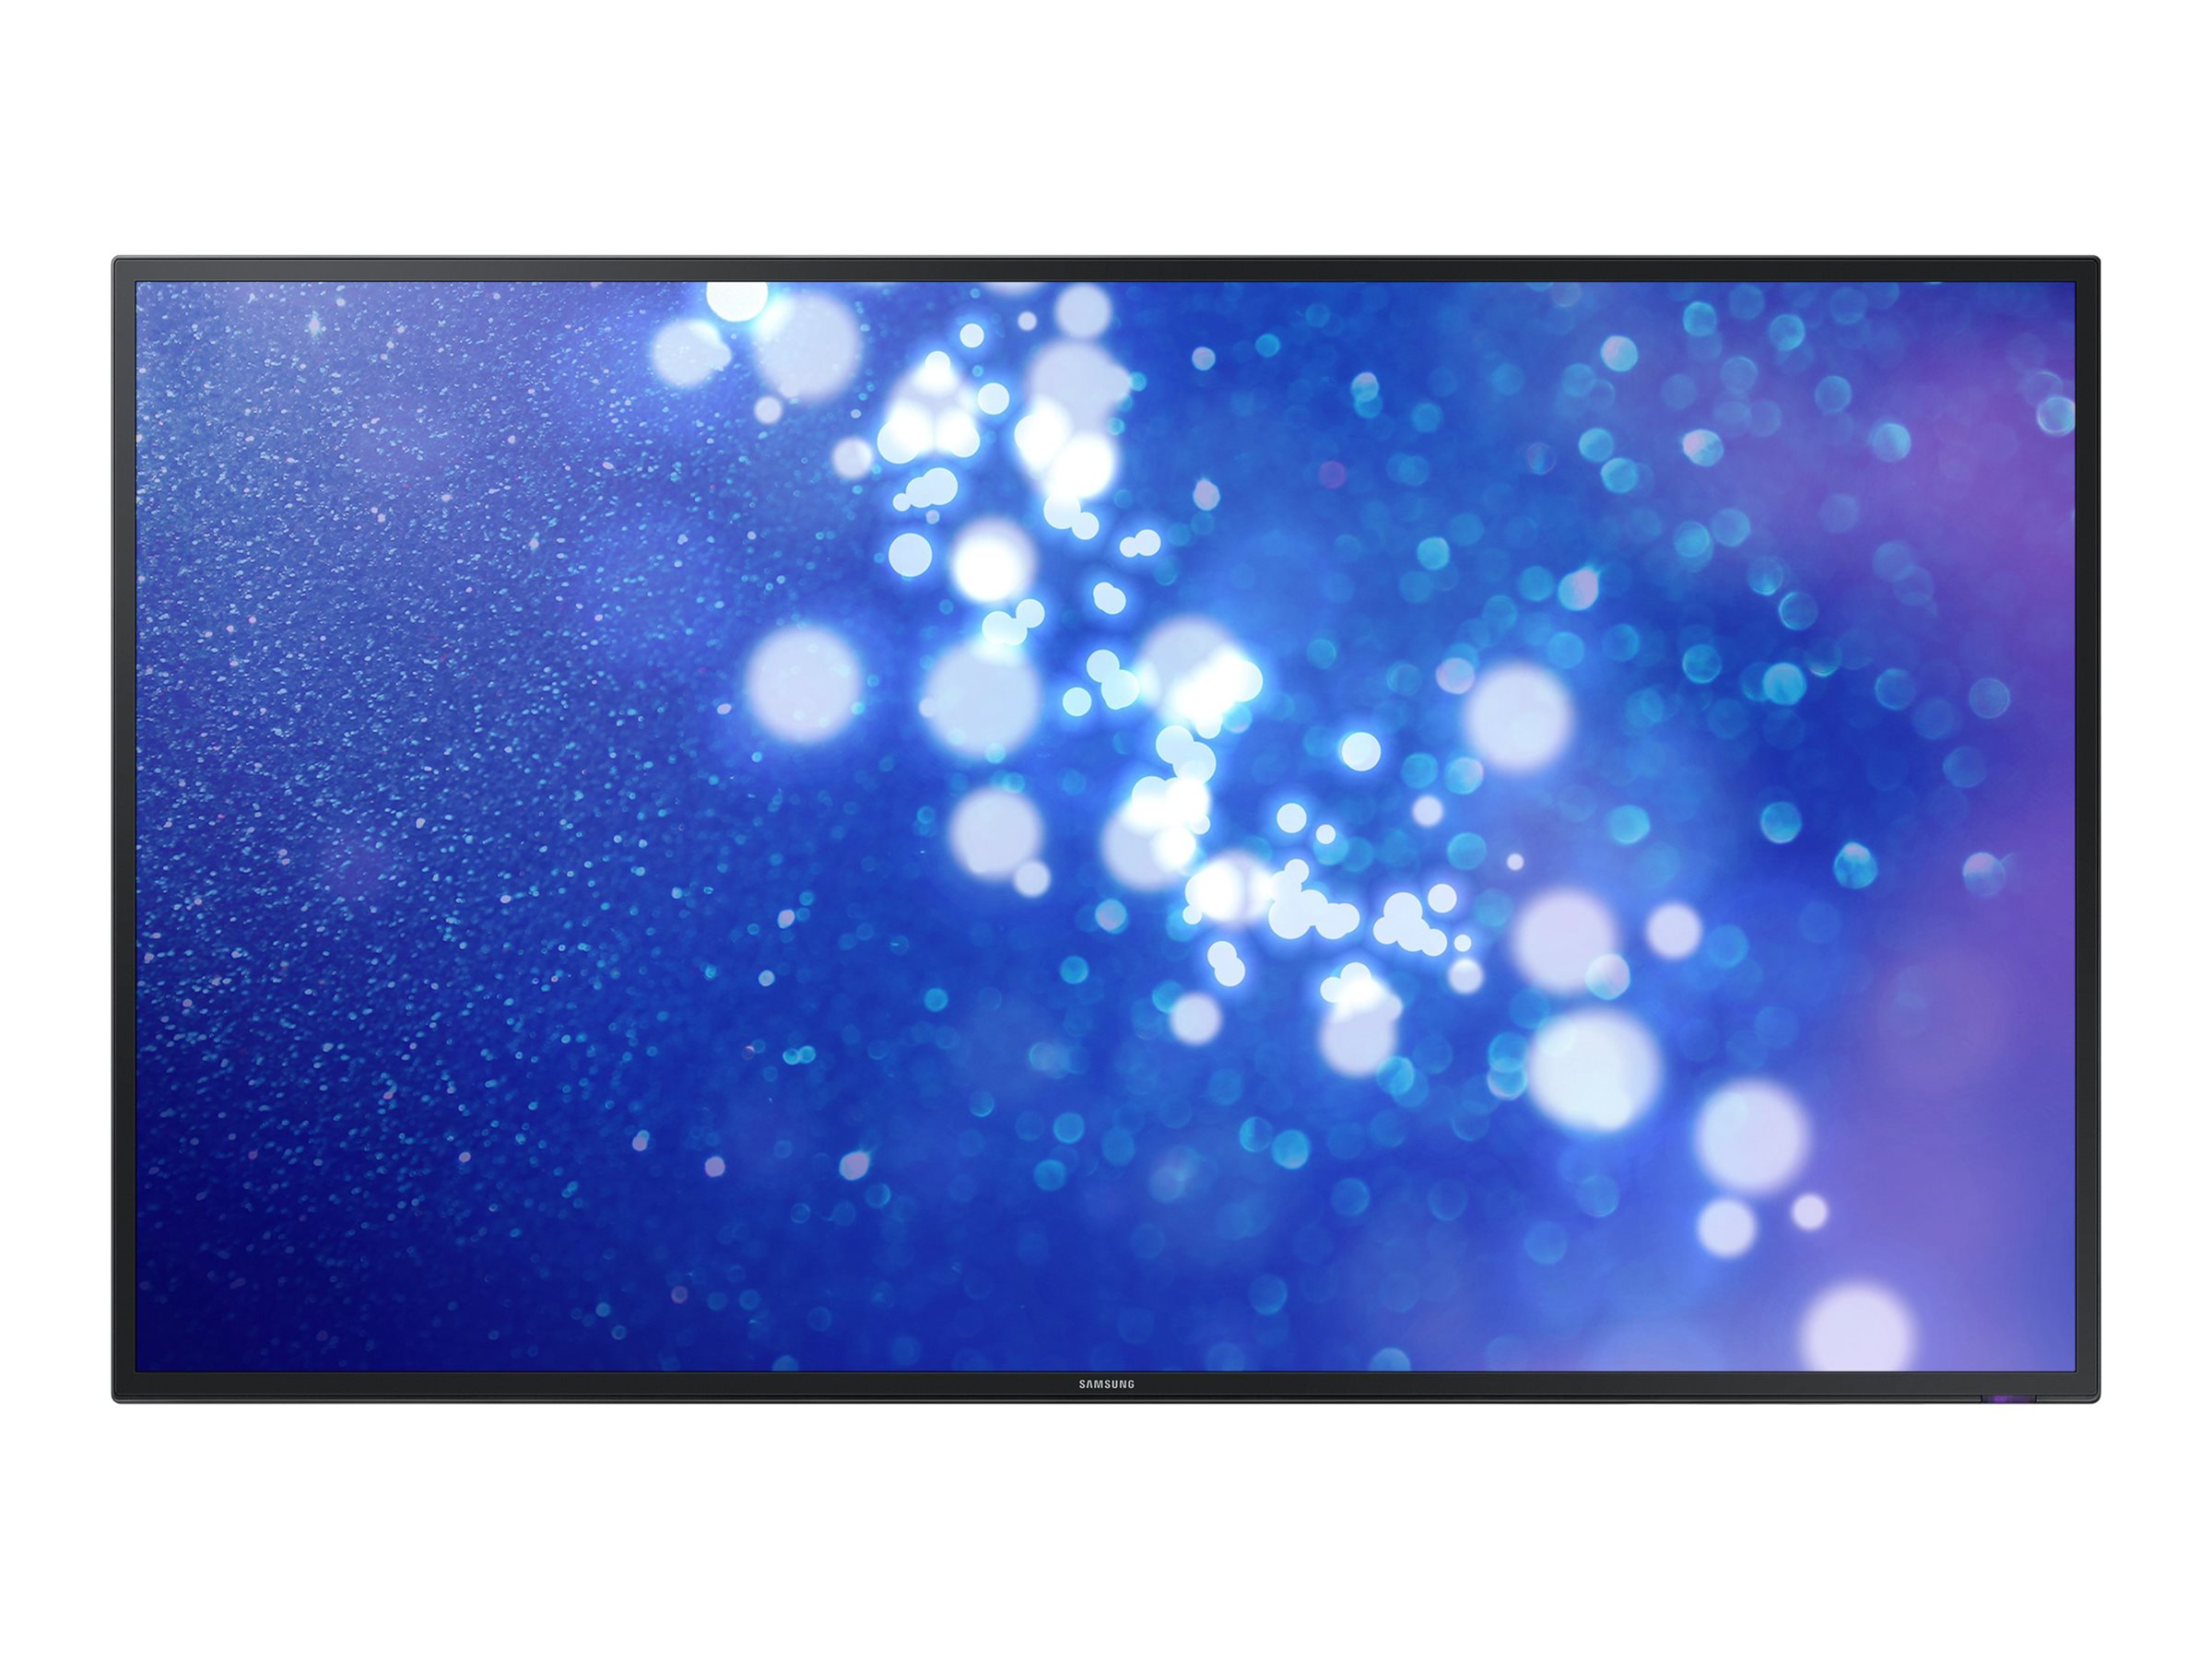 Samsung 75 DM-E Full HD LED-LCD Display, Black